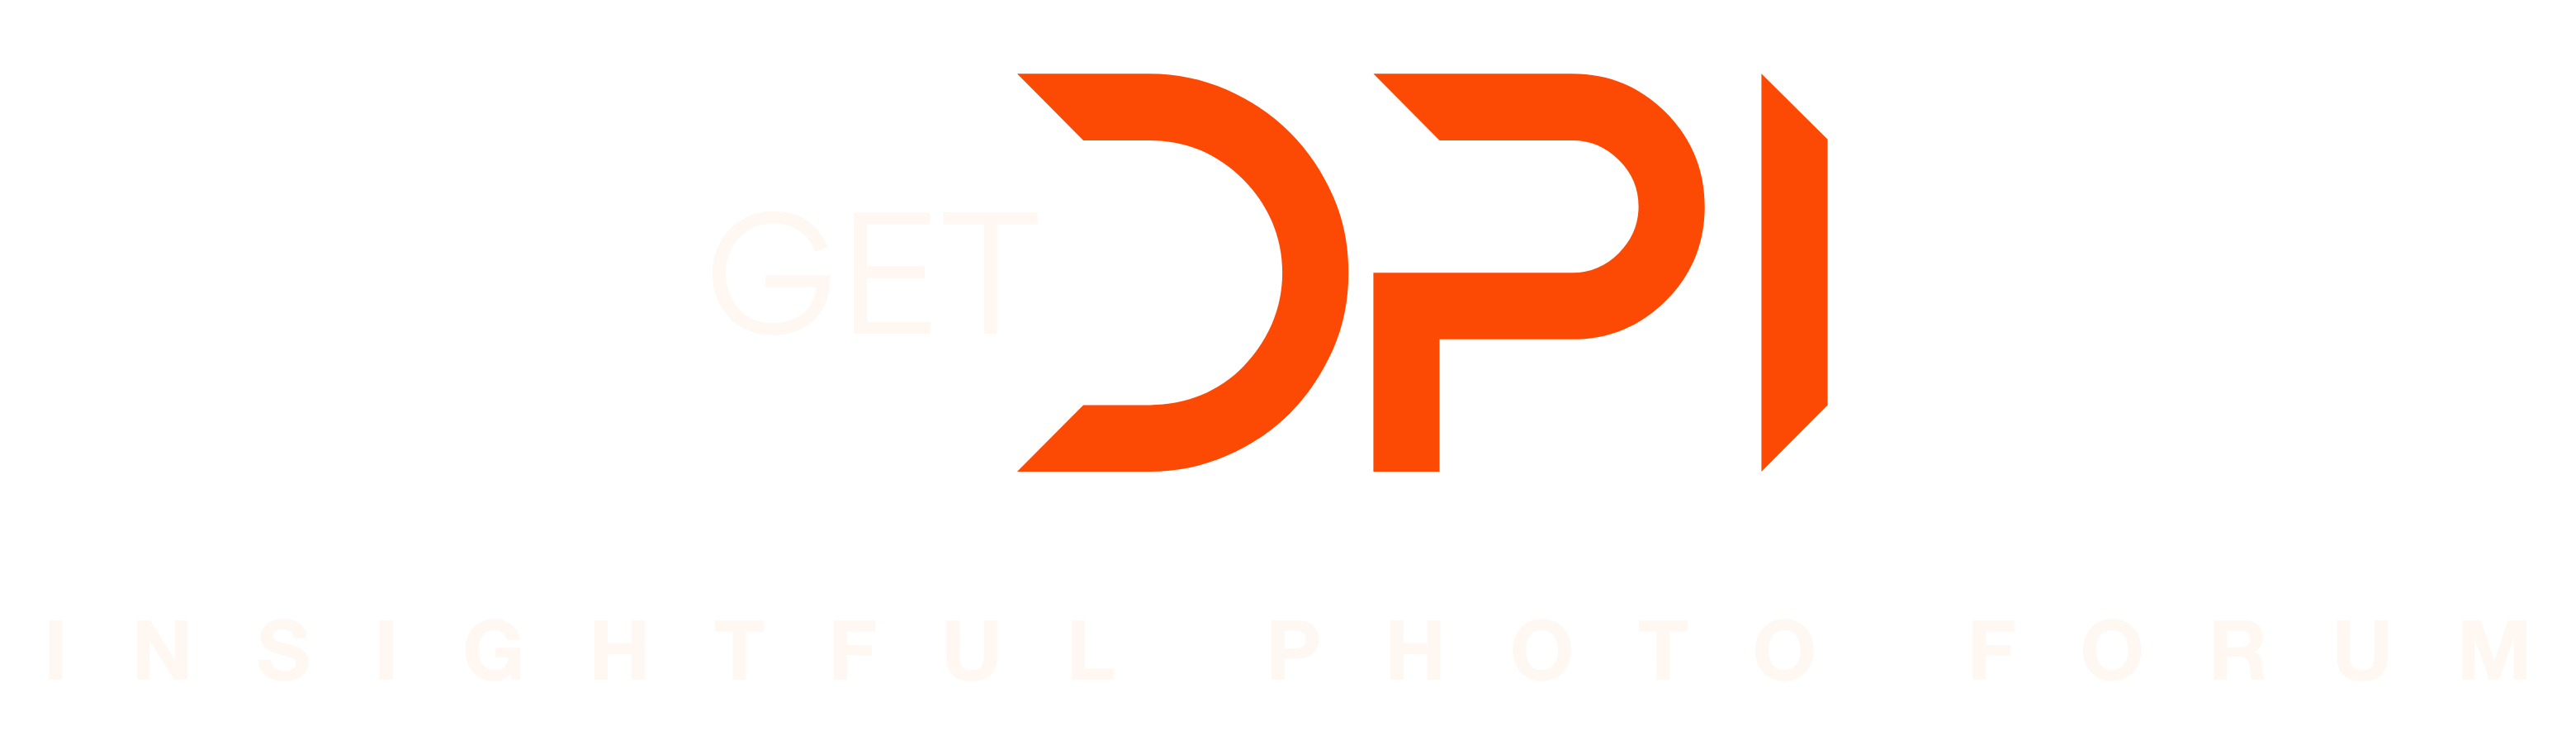 The GetDPI Photography Forum